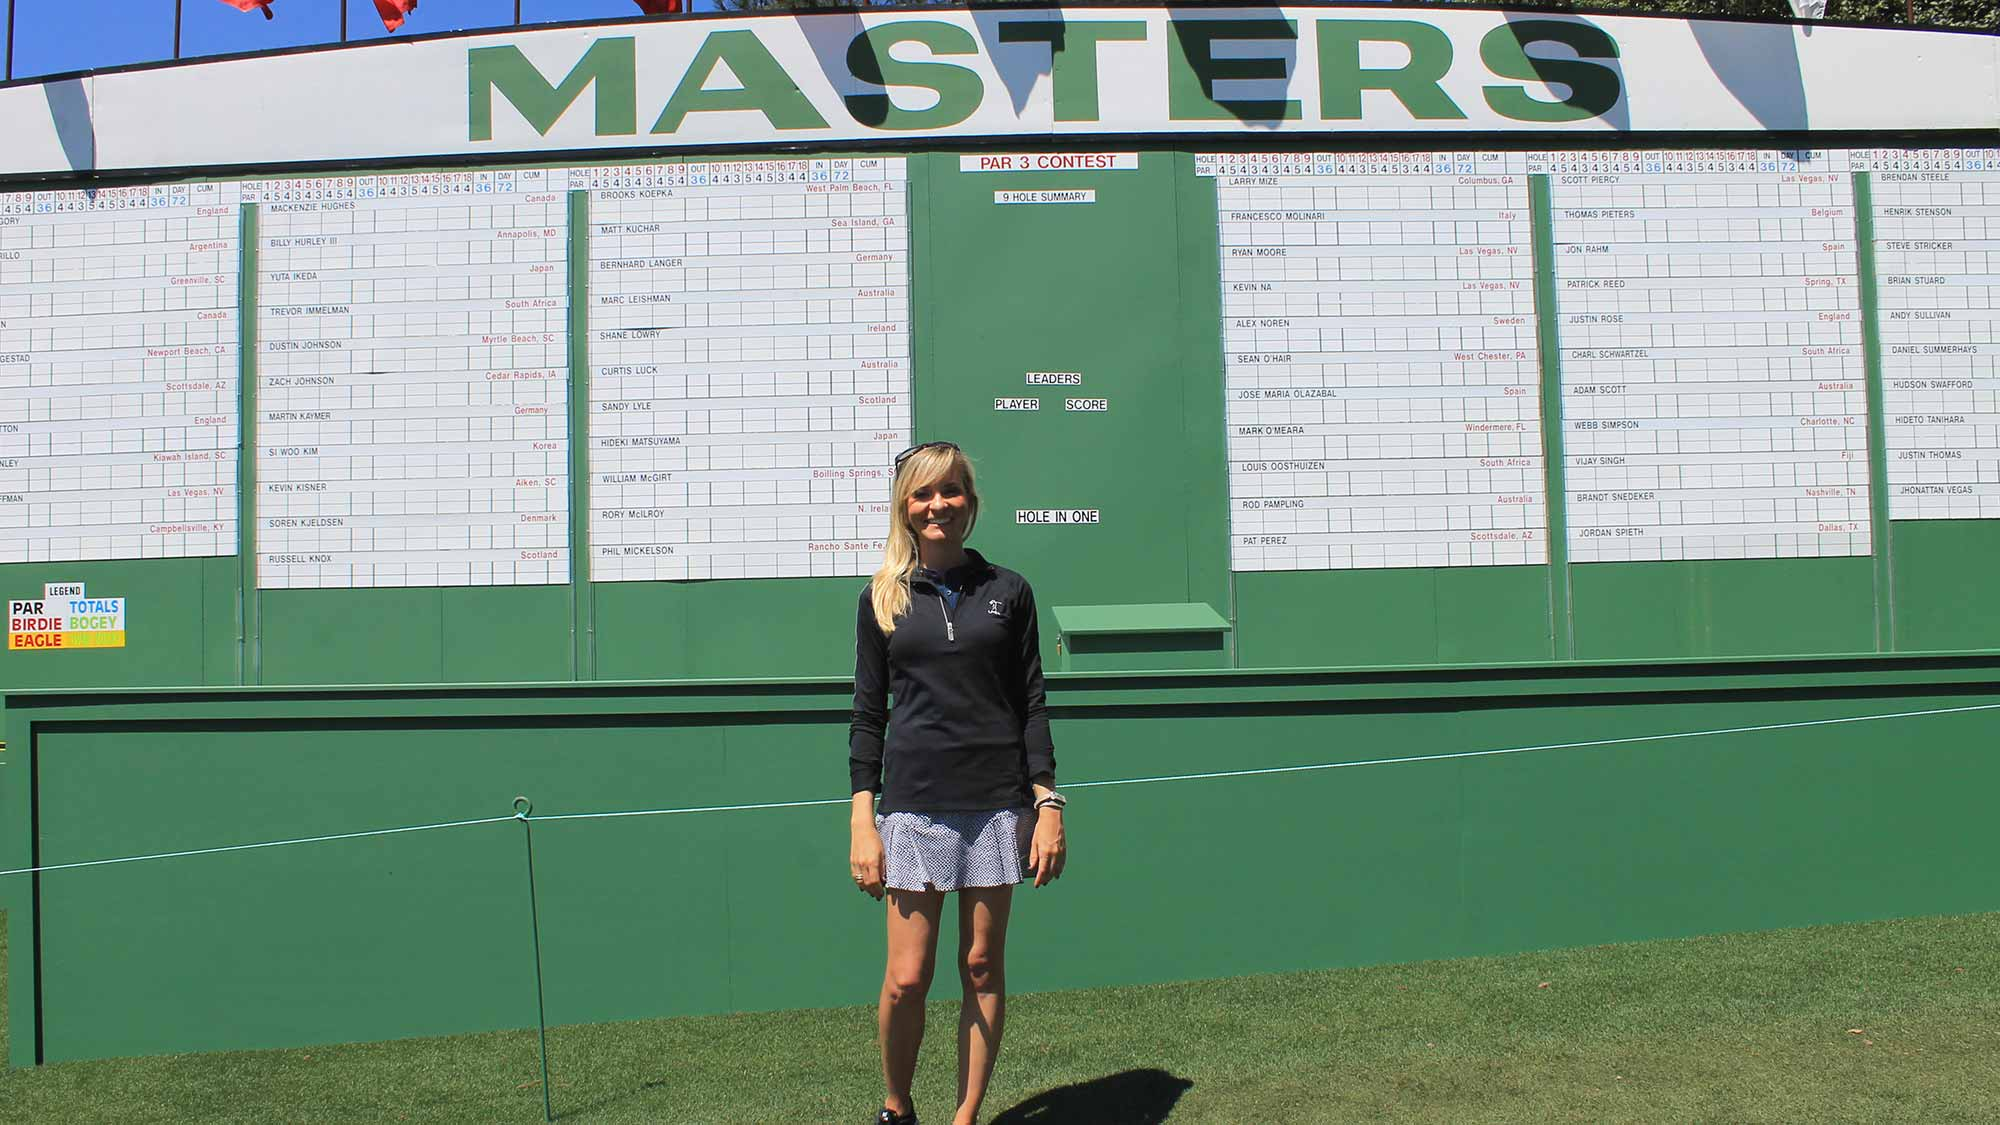 2017 lpga heads to the masters solheim cup